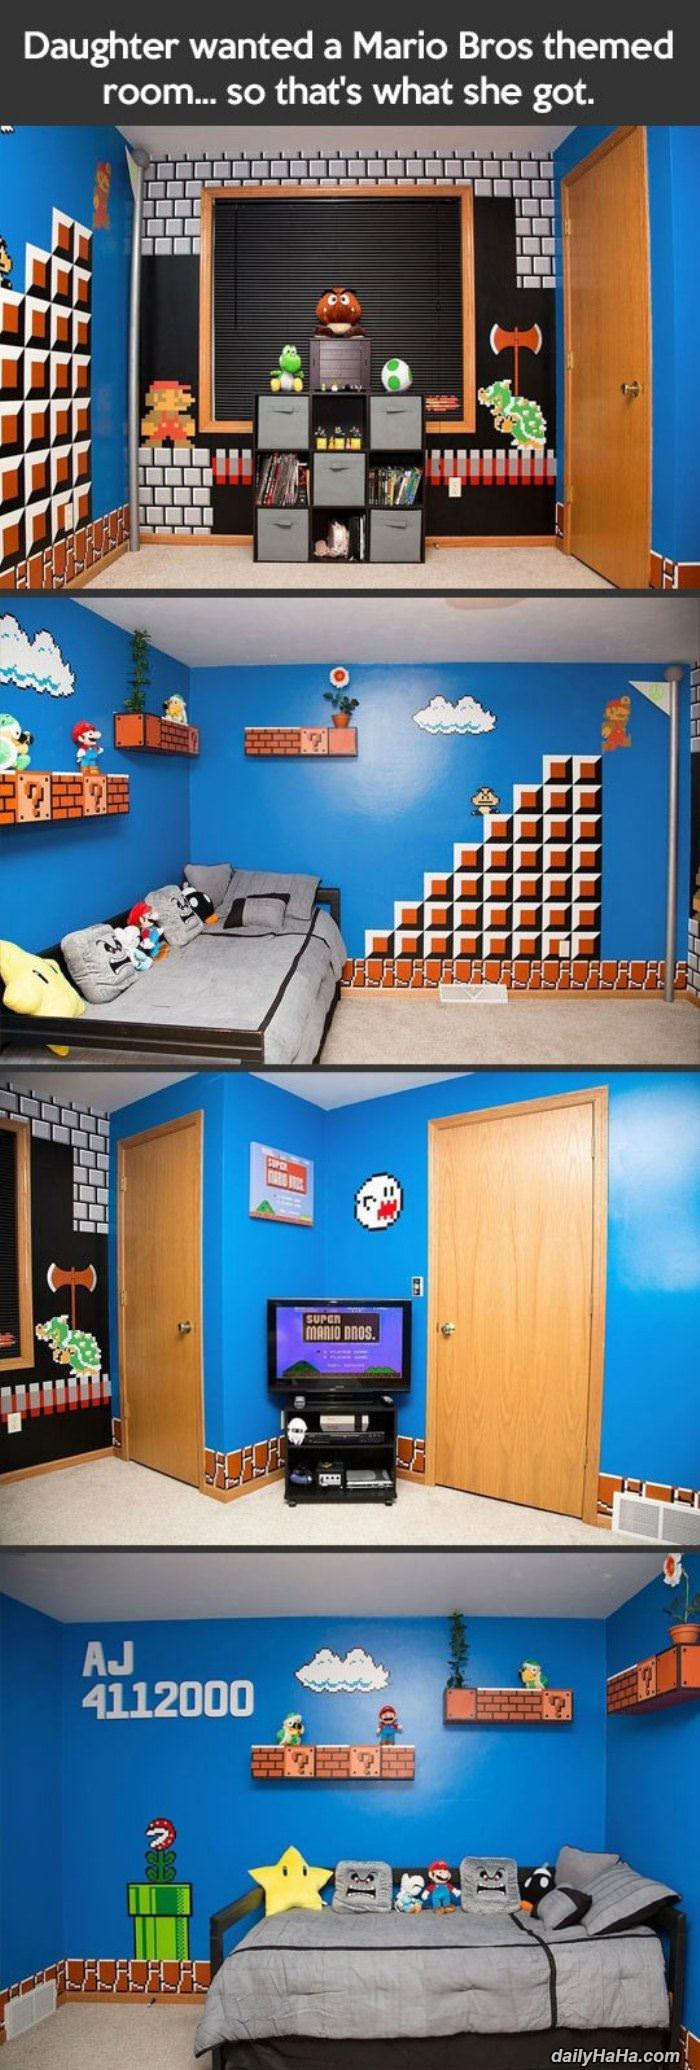 mario themed room funny picture